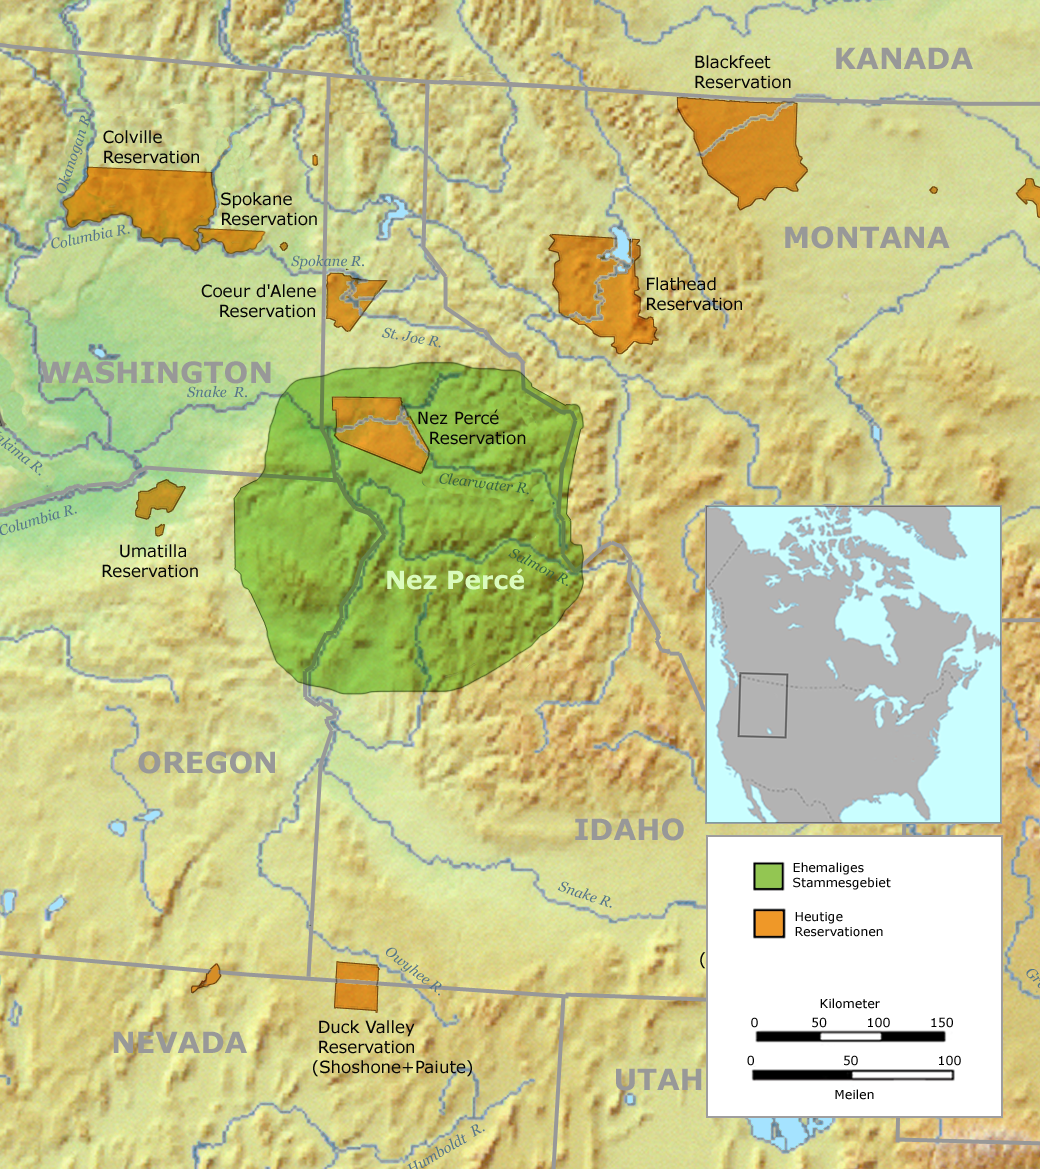 Original Nez Perce territory (green) and the reduced reservation of 1863 (brown)